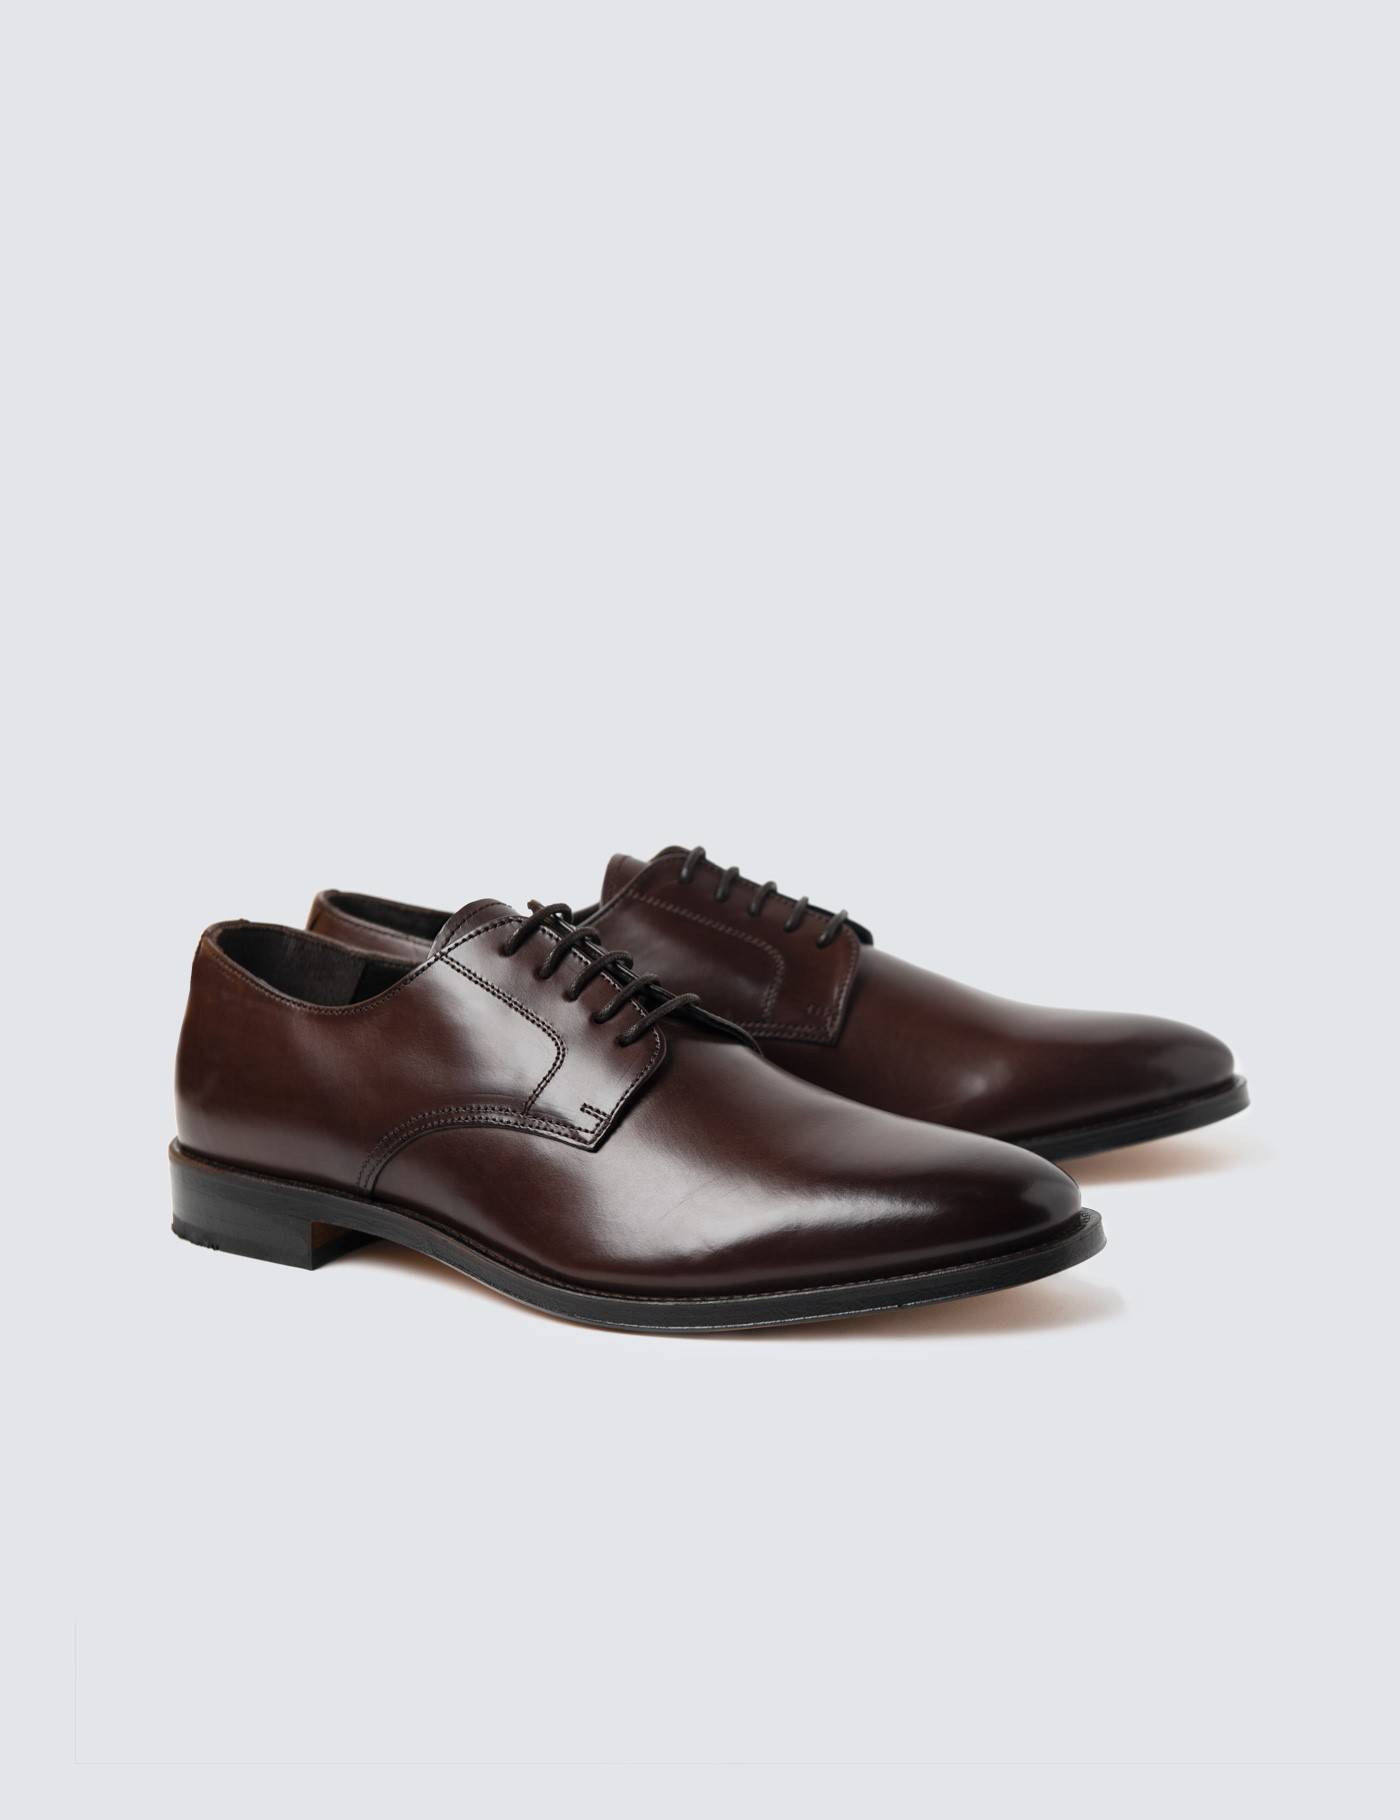 Hawes & Curtis Men's Leather Plain Derby Shoes in Brown Size 9 Hawes & Curtis